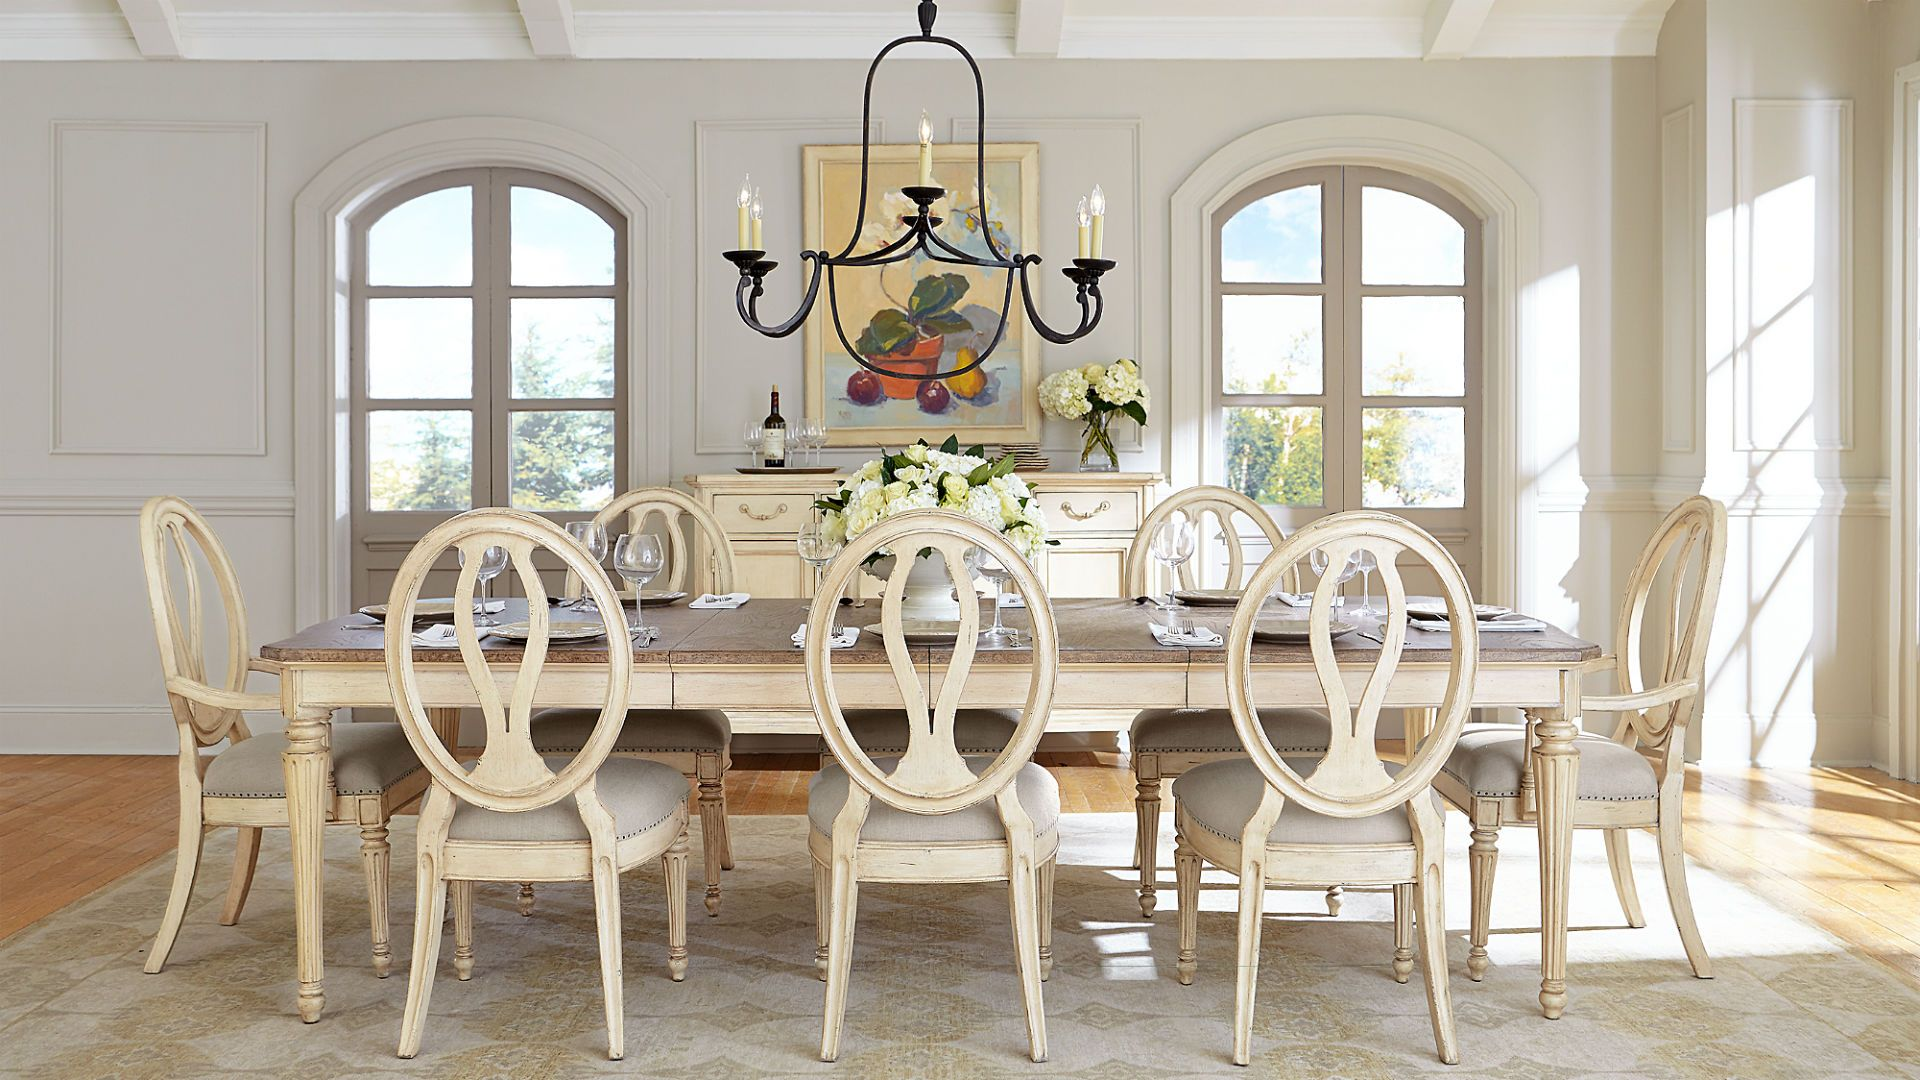 Ordinaire European Cottage   Dining Room   Stanley Furniture